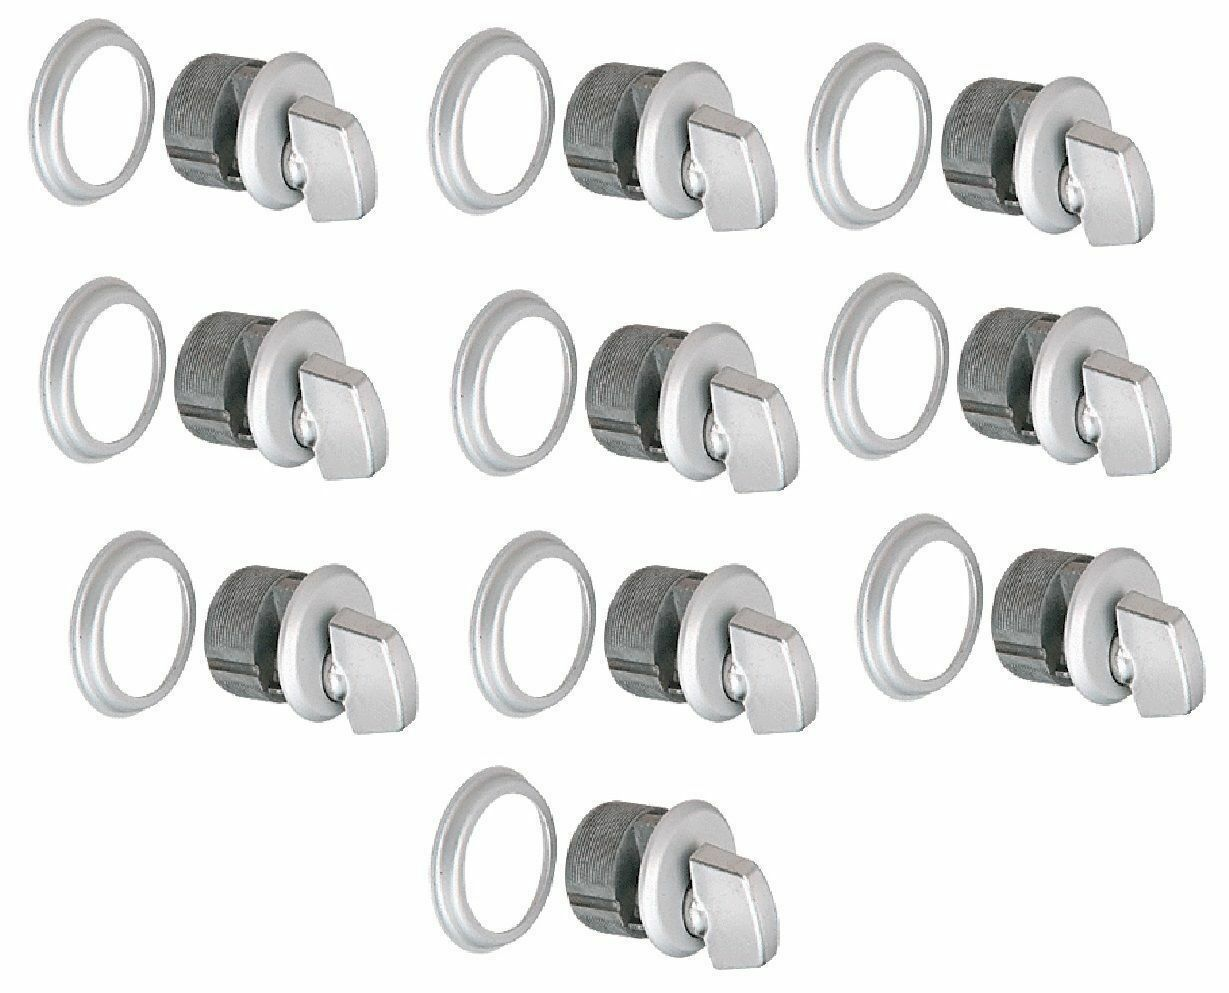 10 ilco thumbturn mortise cylinders 4 adams rite storefront locks